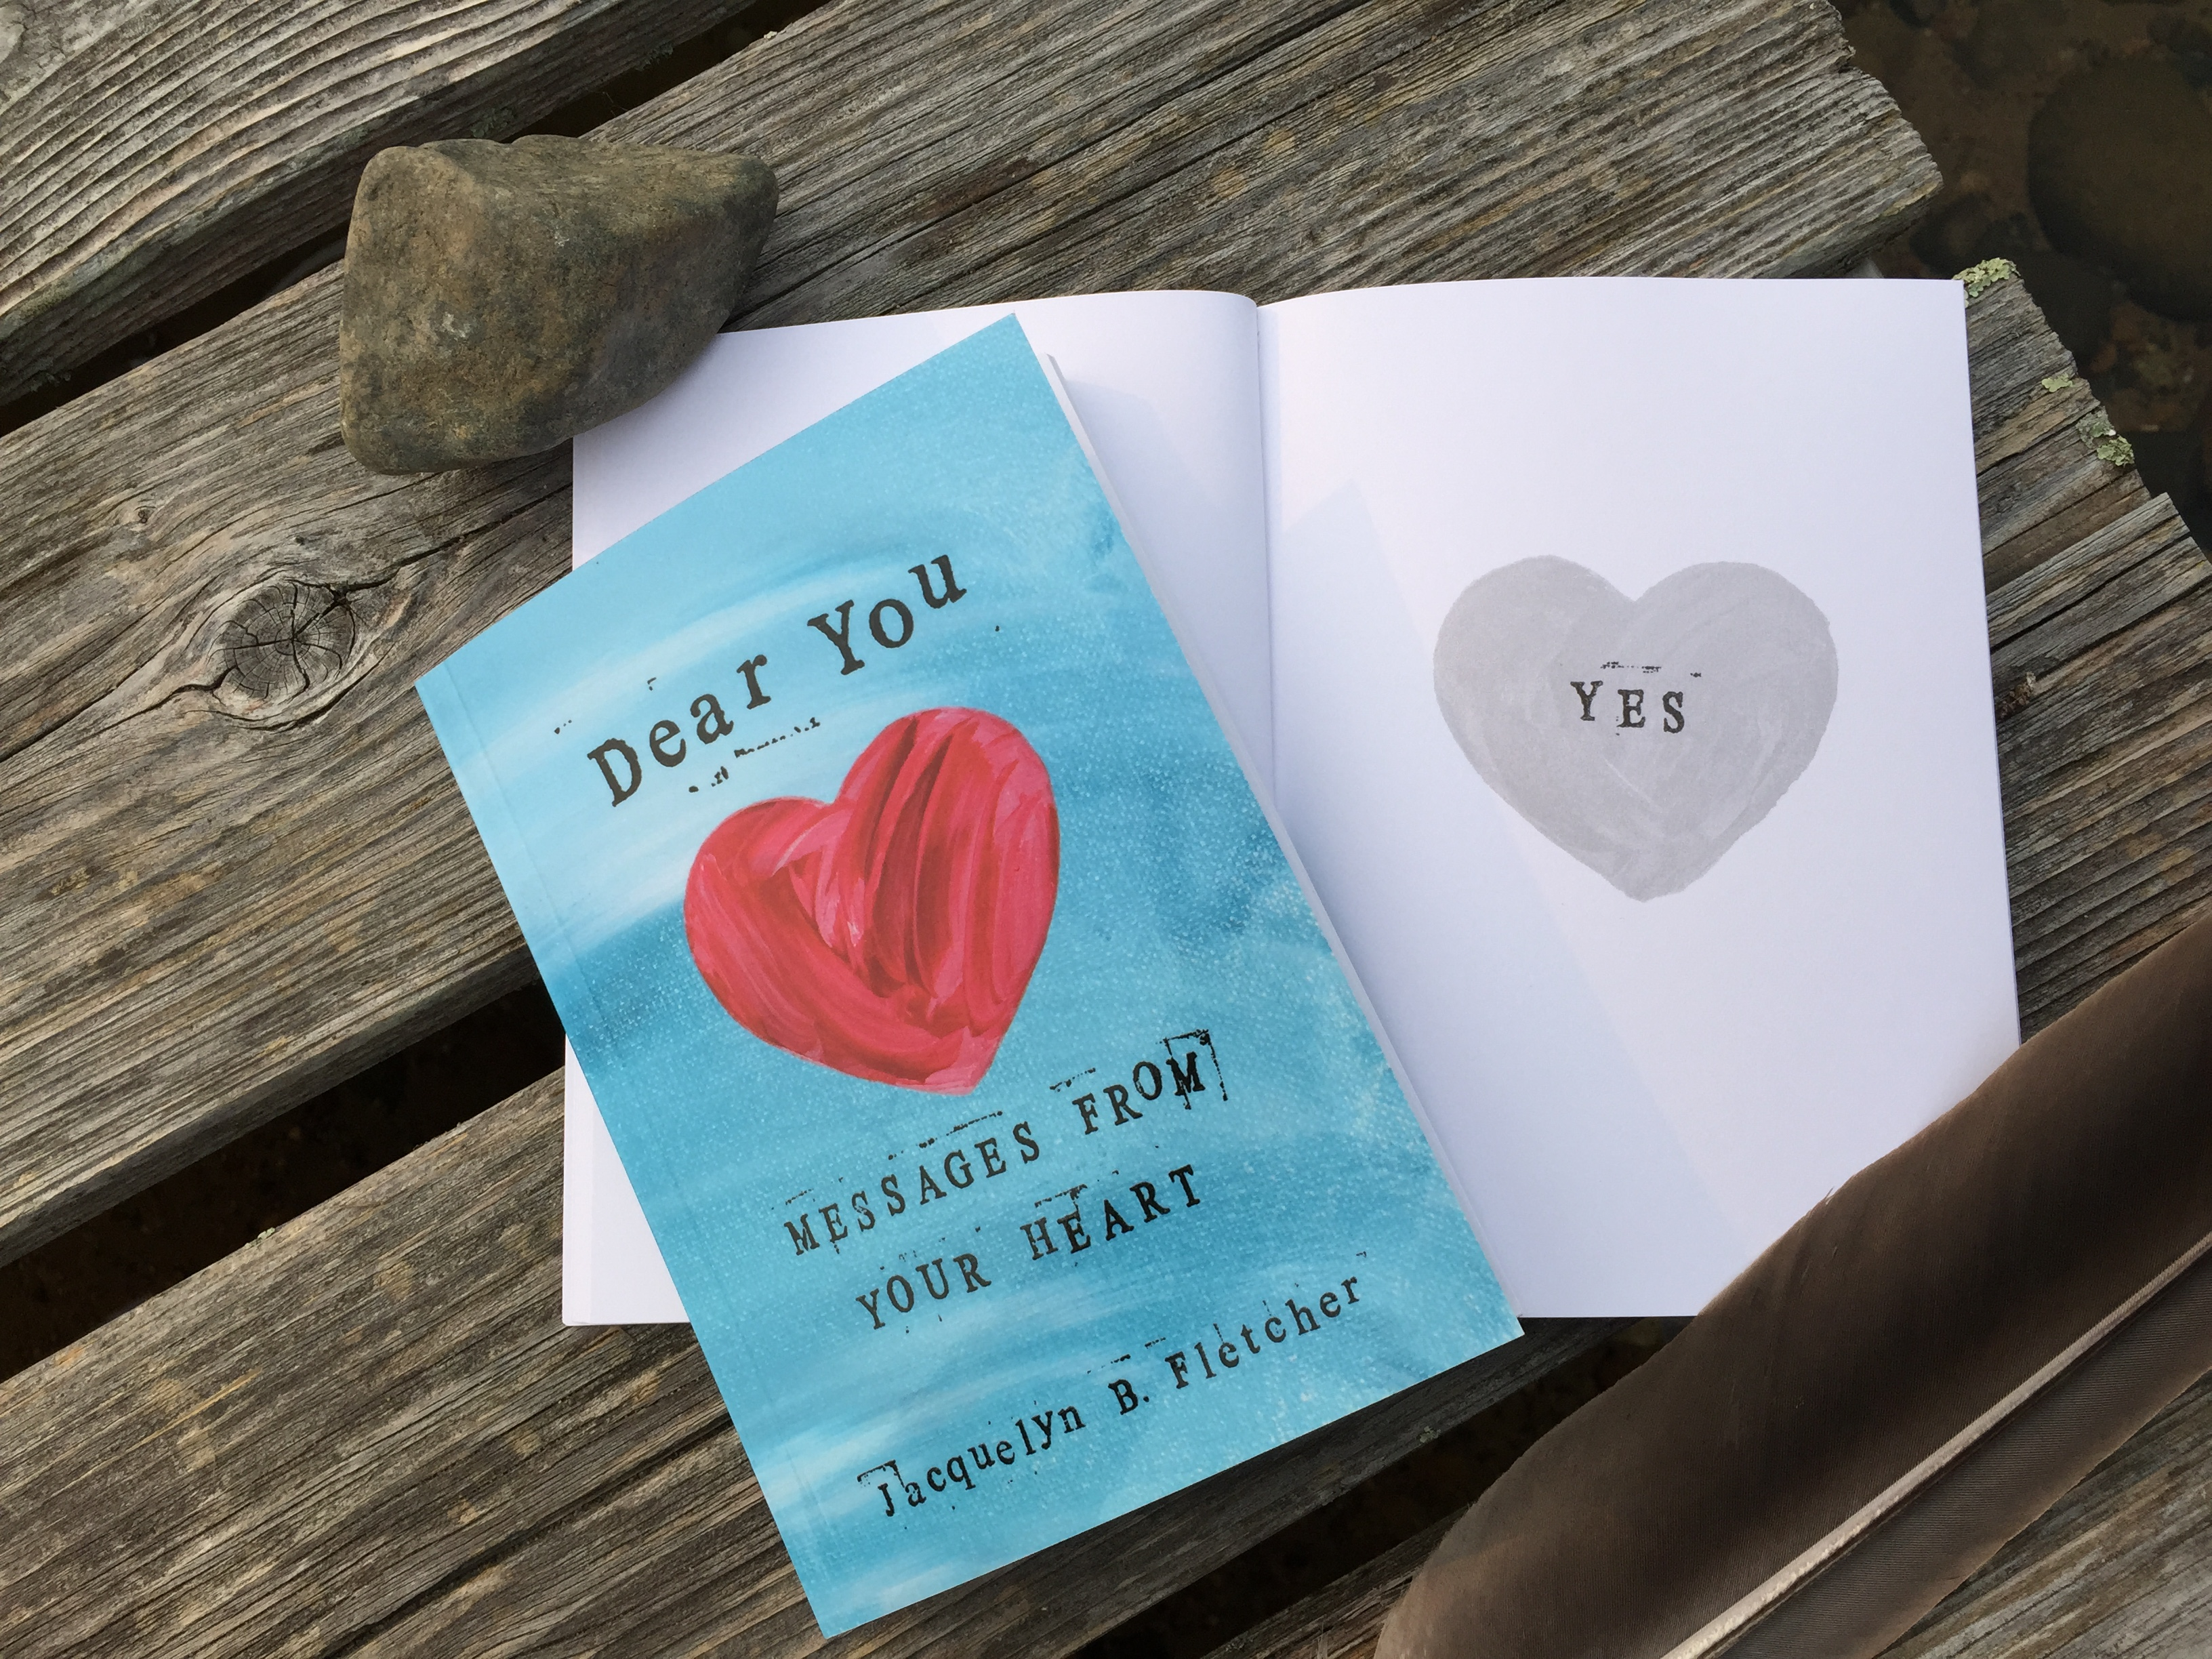 Dear You Messages From Your Heart